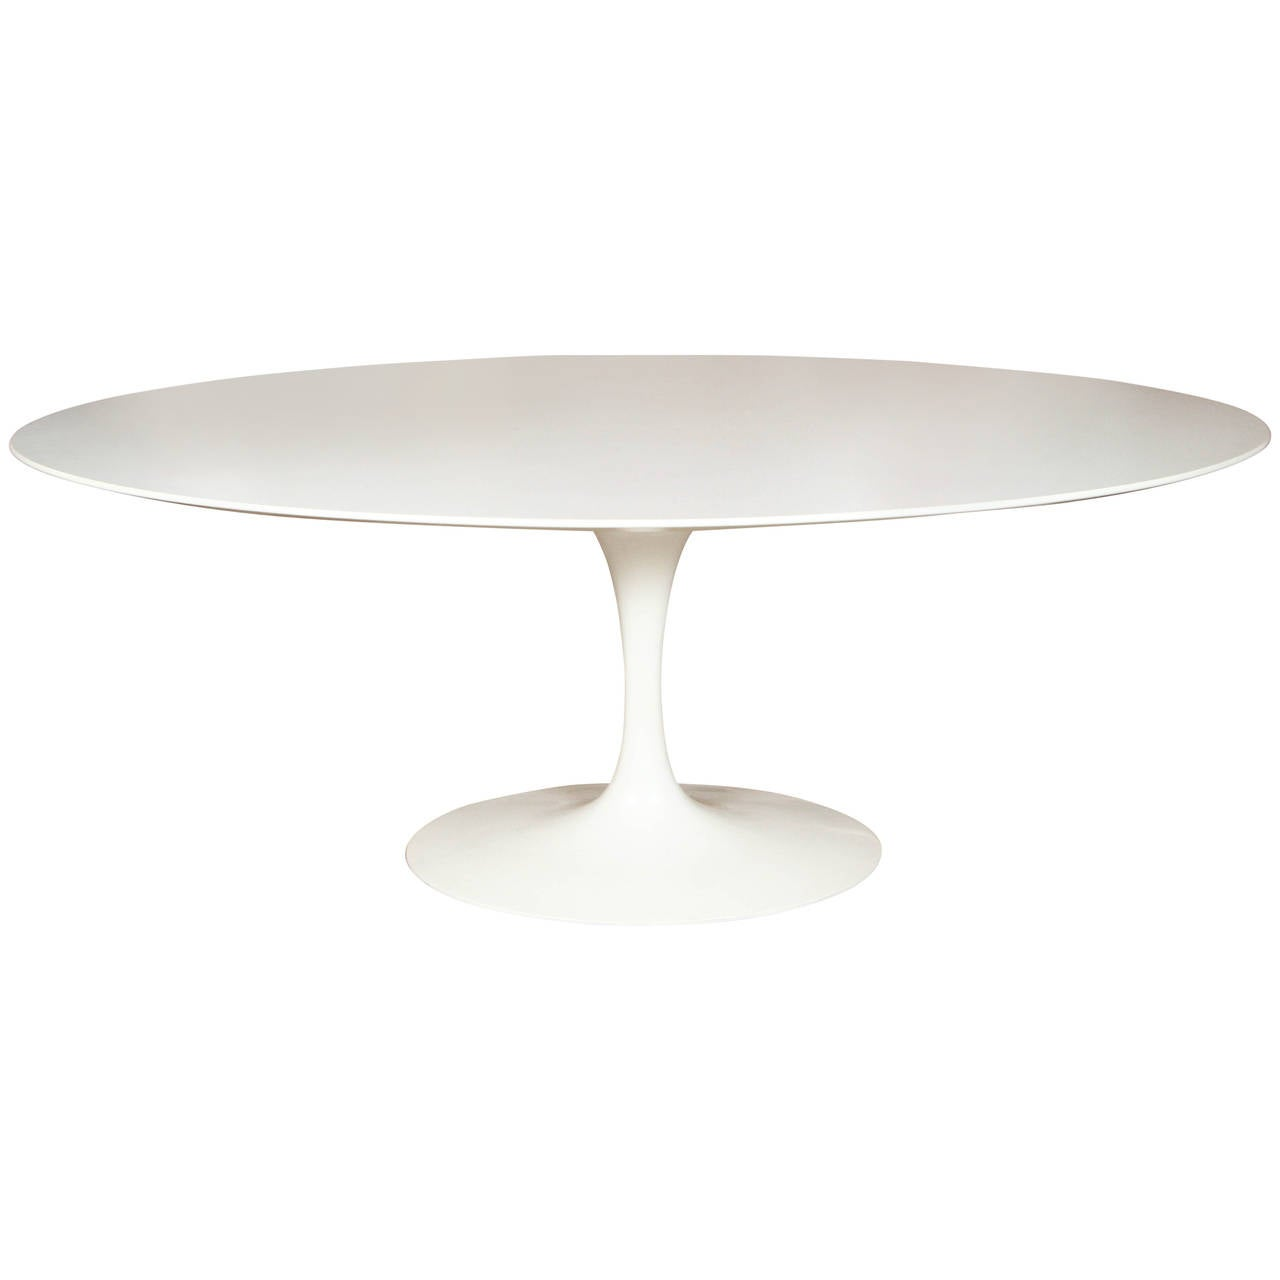 saarinen oval tulip table at 1stdibs. Black Bedroom Furniture Sets. Home Design Ideas